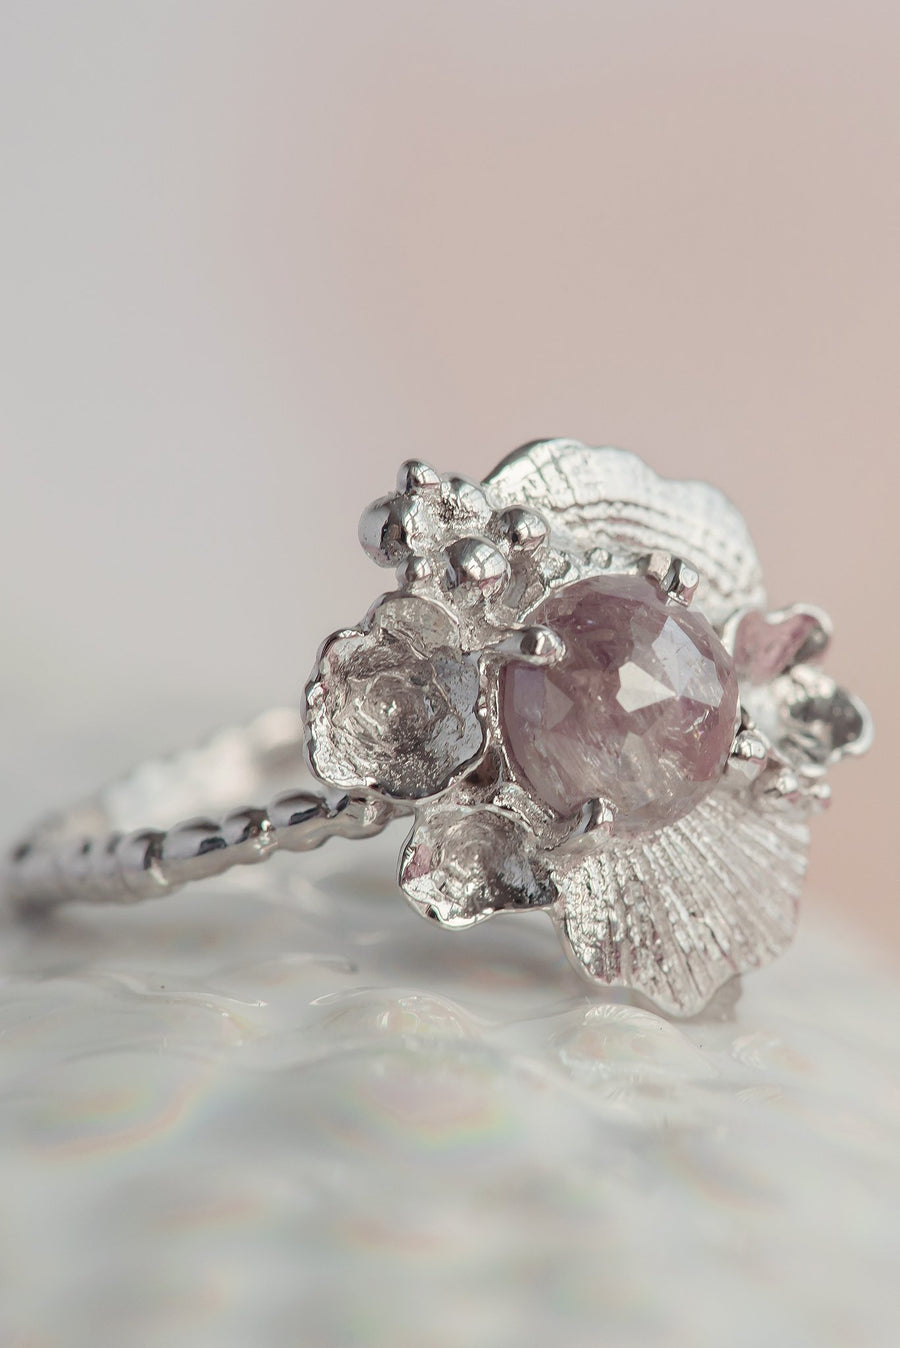 Tide Pool Ring with Rose Cut Diamond 14K White Gold